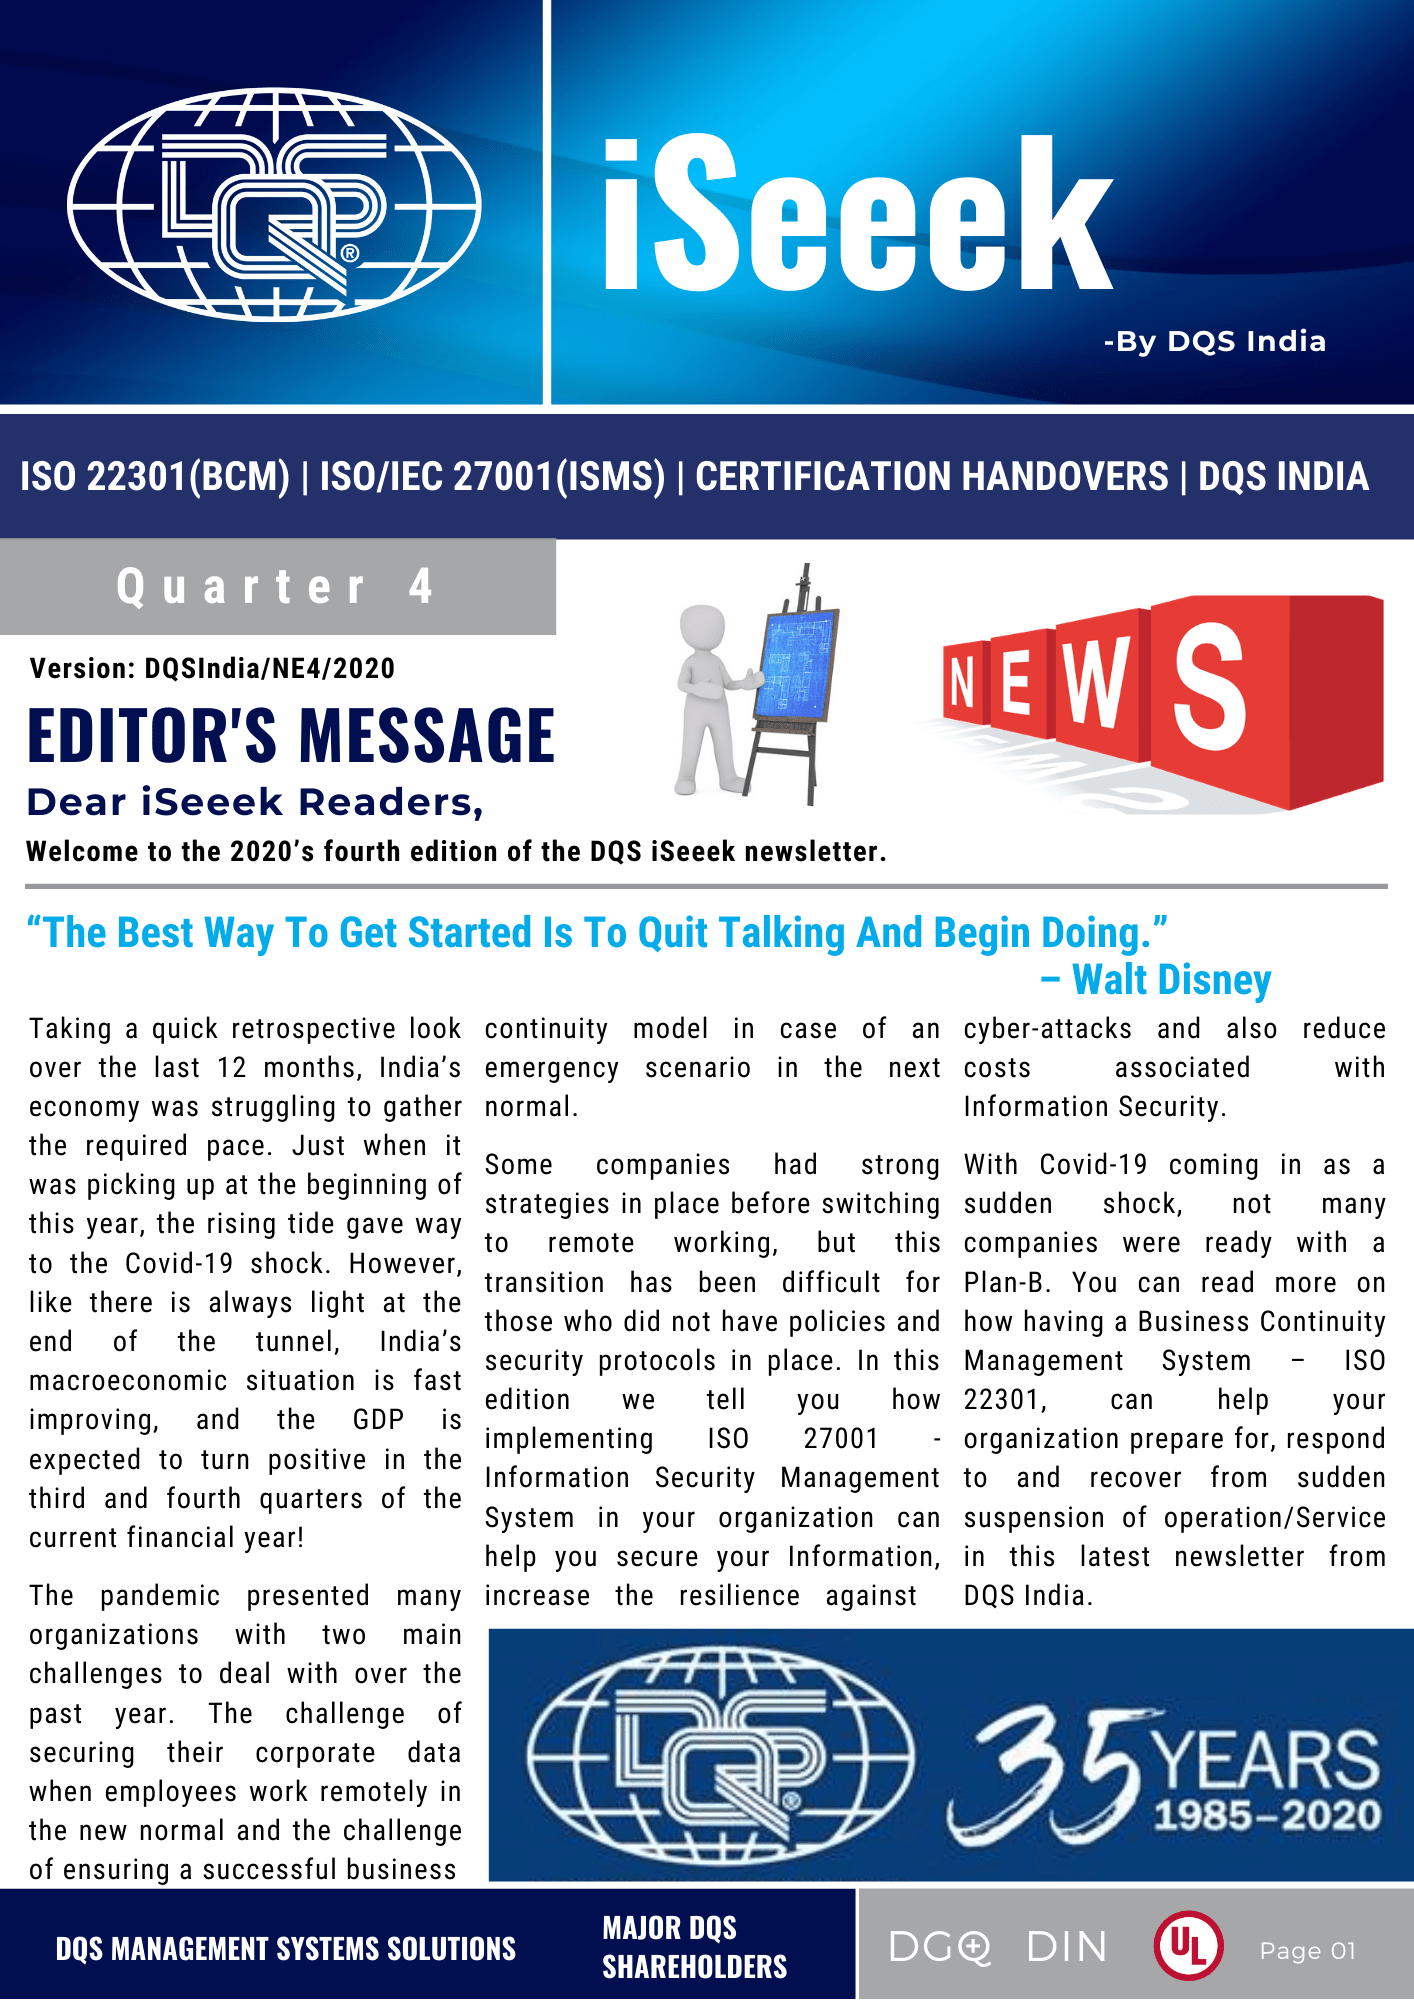 https://dqs-india.in/wp-content/uploads/2021/01/iSeeek-DQS-India-Newsletter-Q1-20.pdf